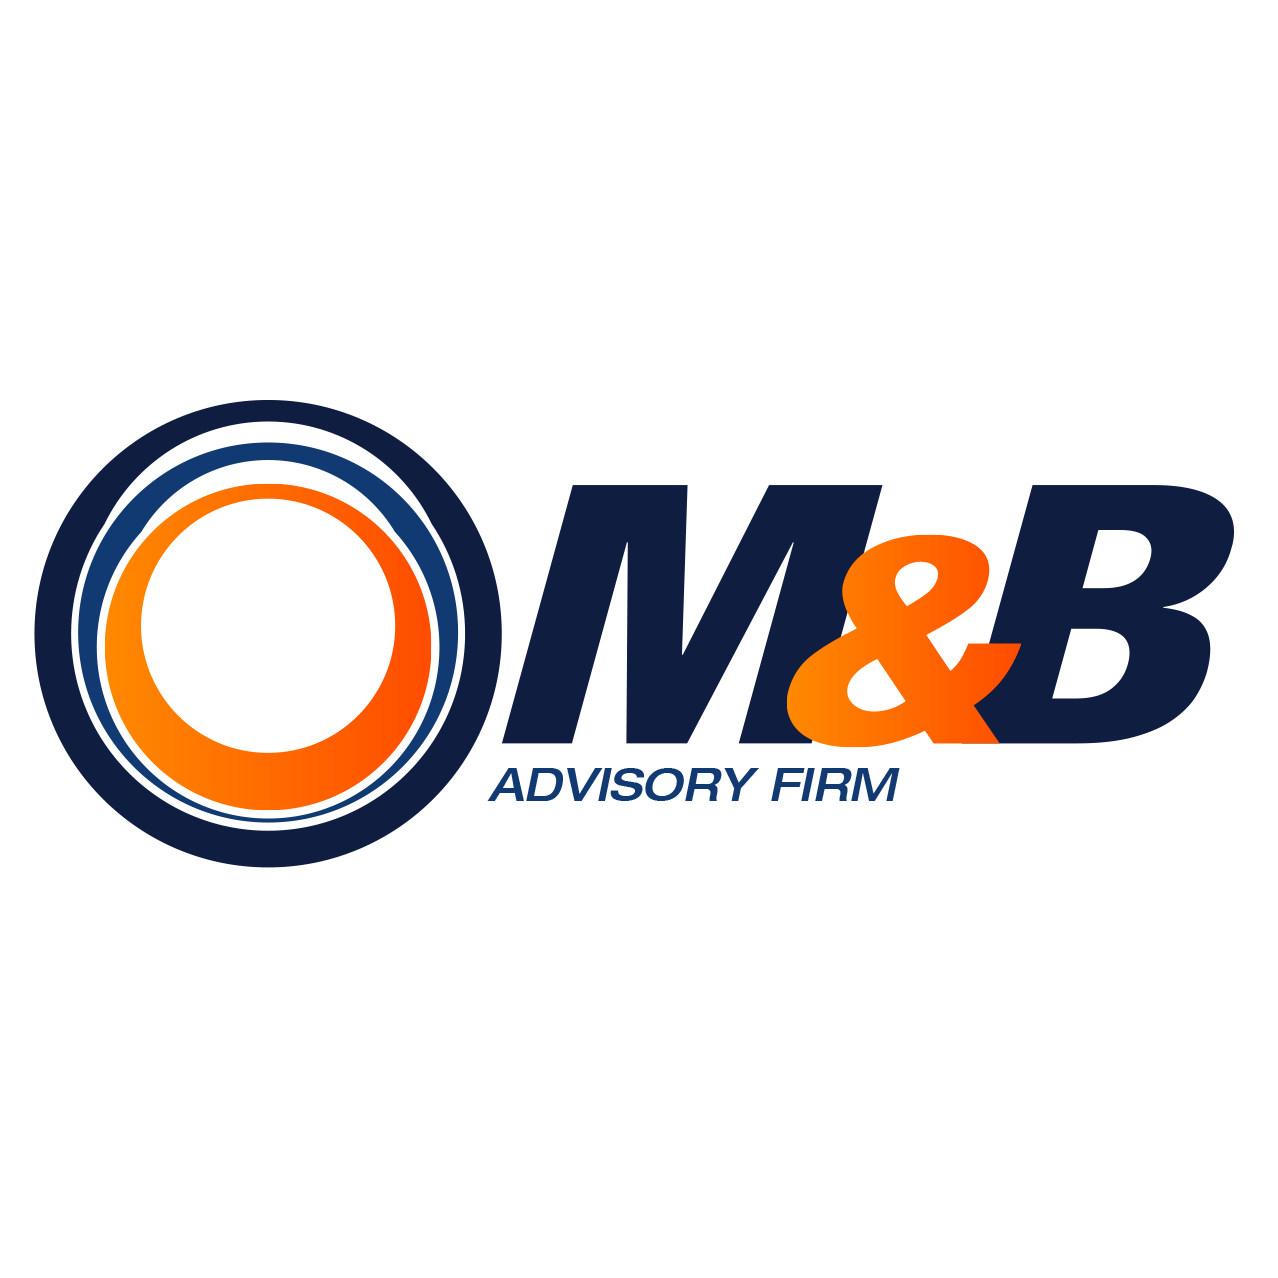 M&B Advisory Firm image 8